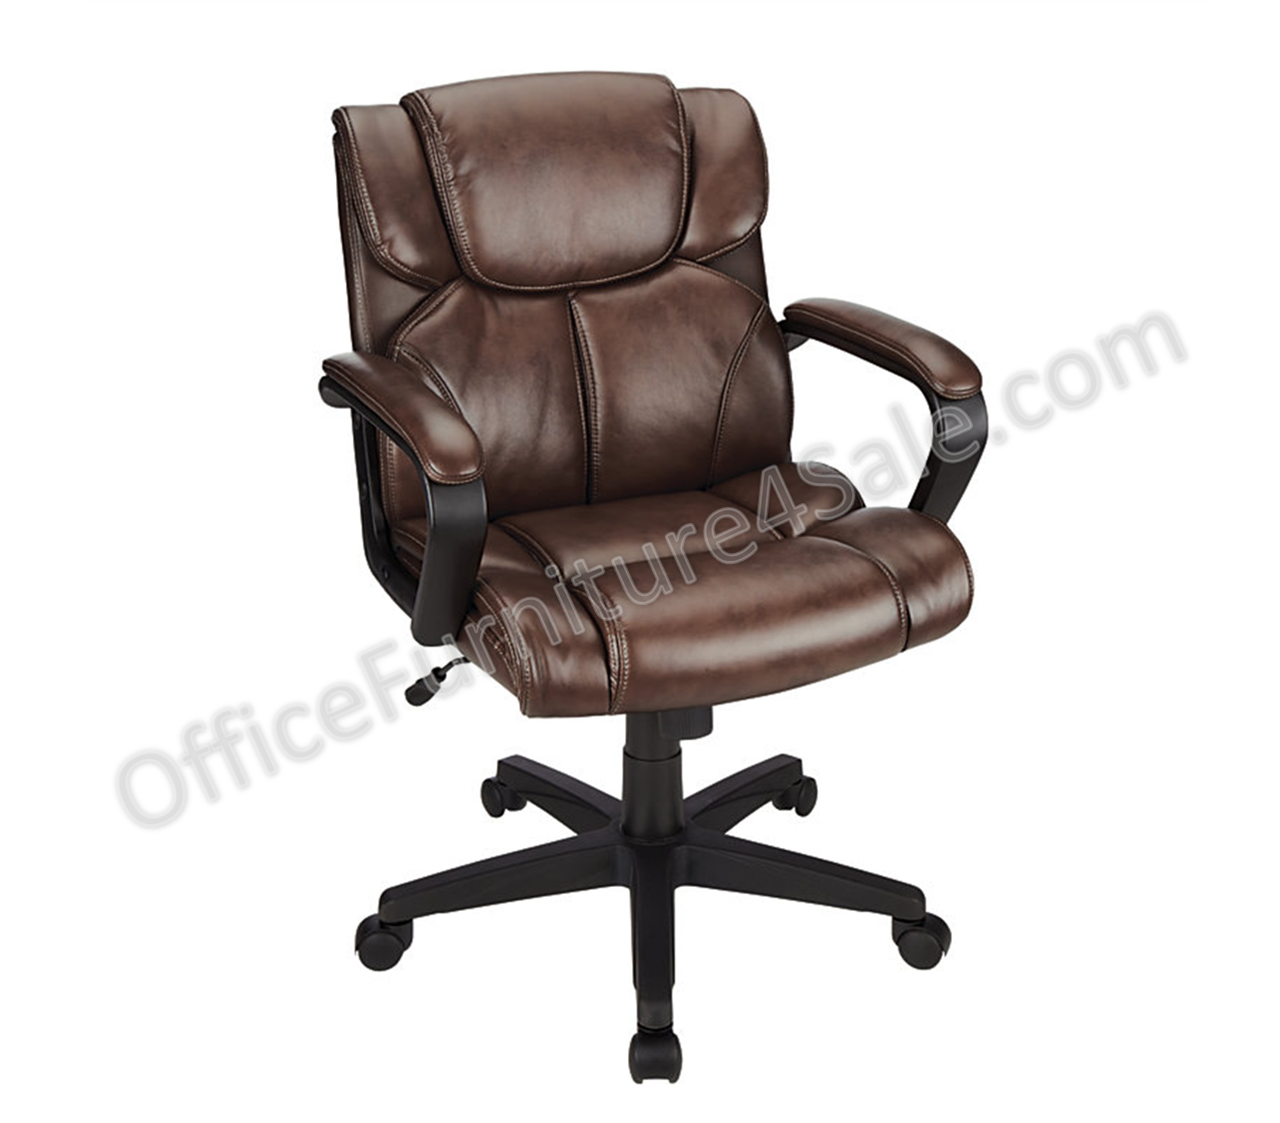 Chefsessel Leder Ebay Mid Back Office Chair Bürostühle Chair Retro Table Chairs